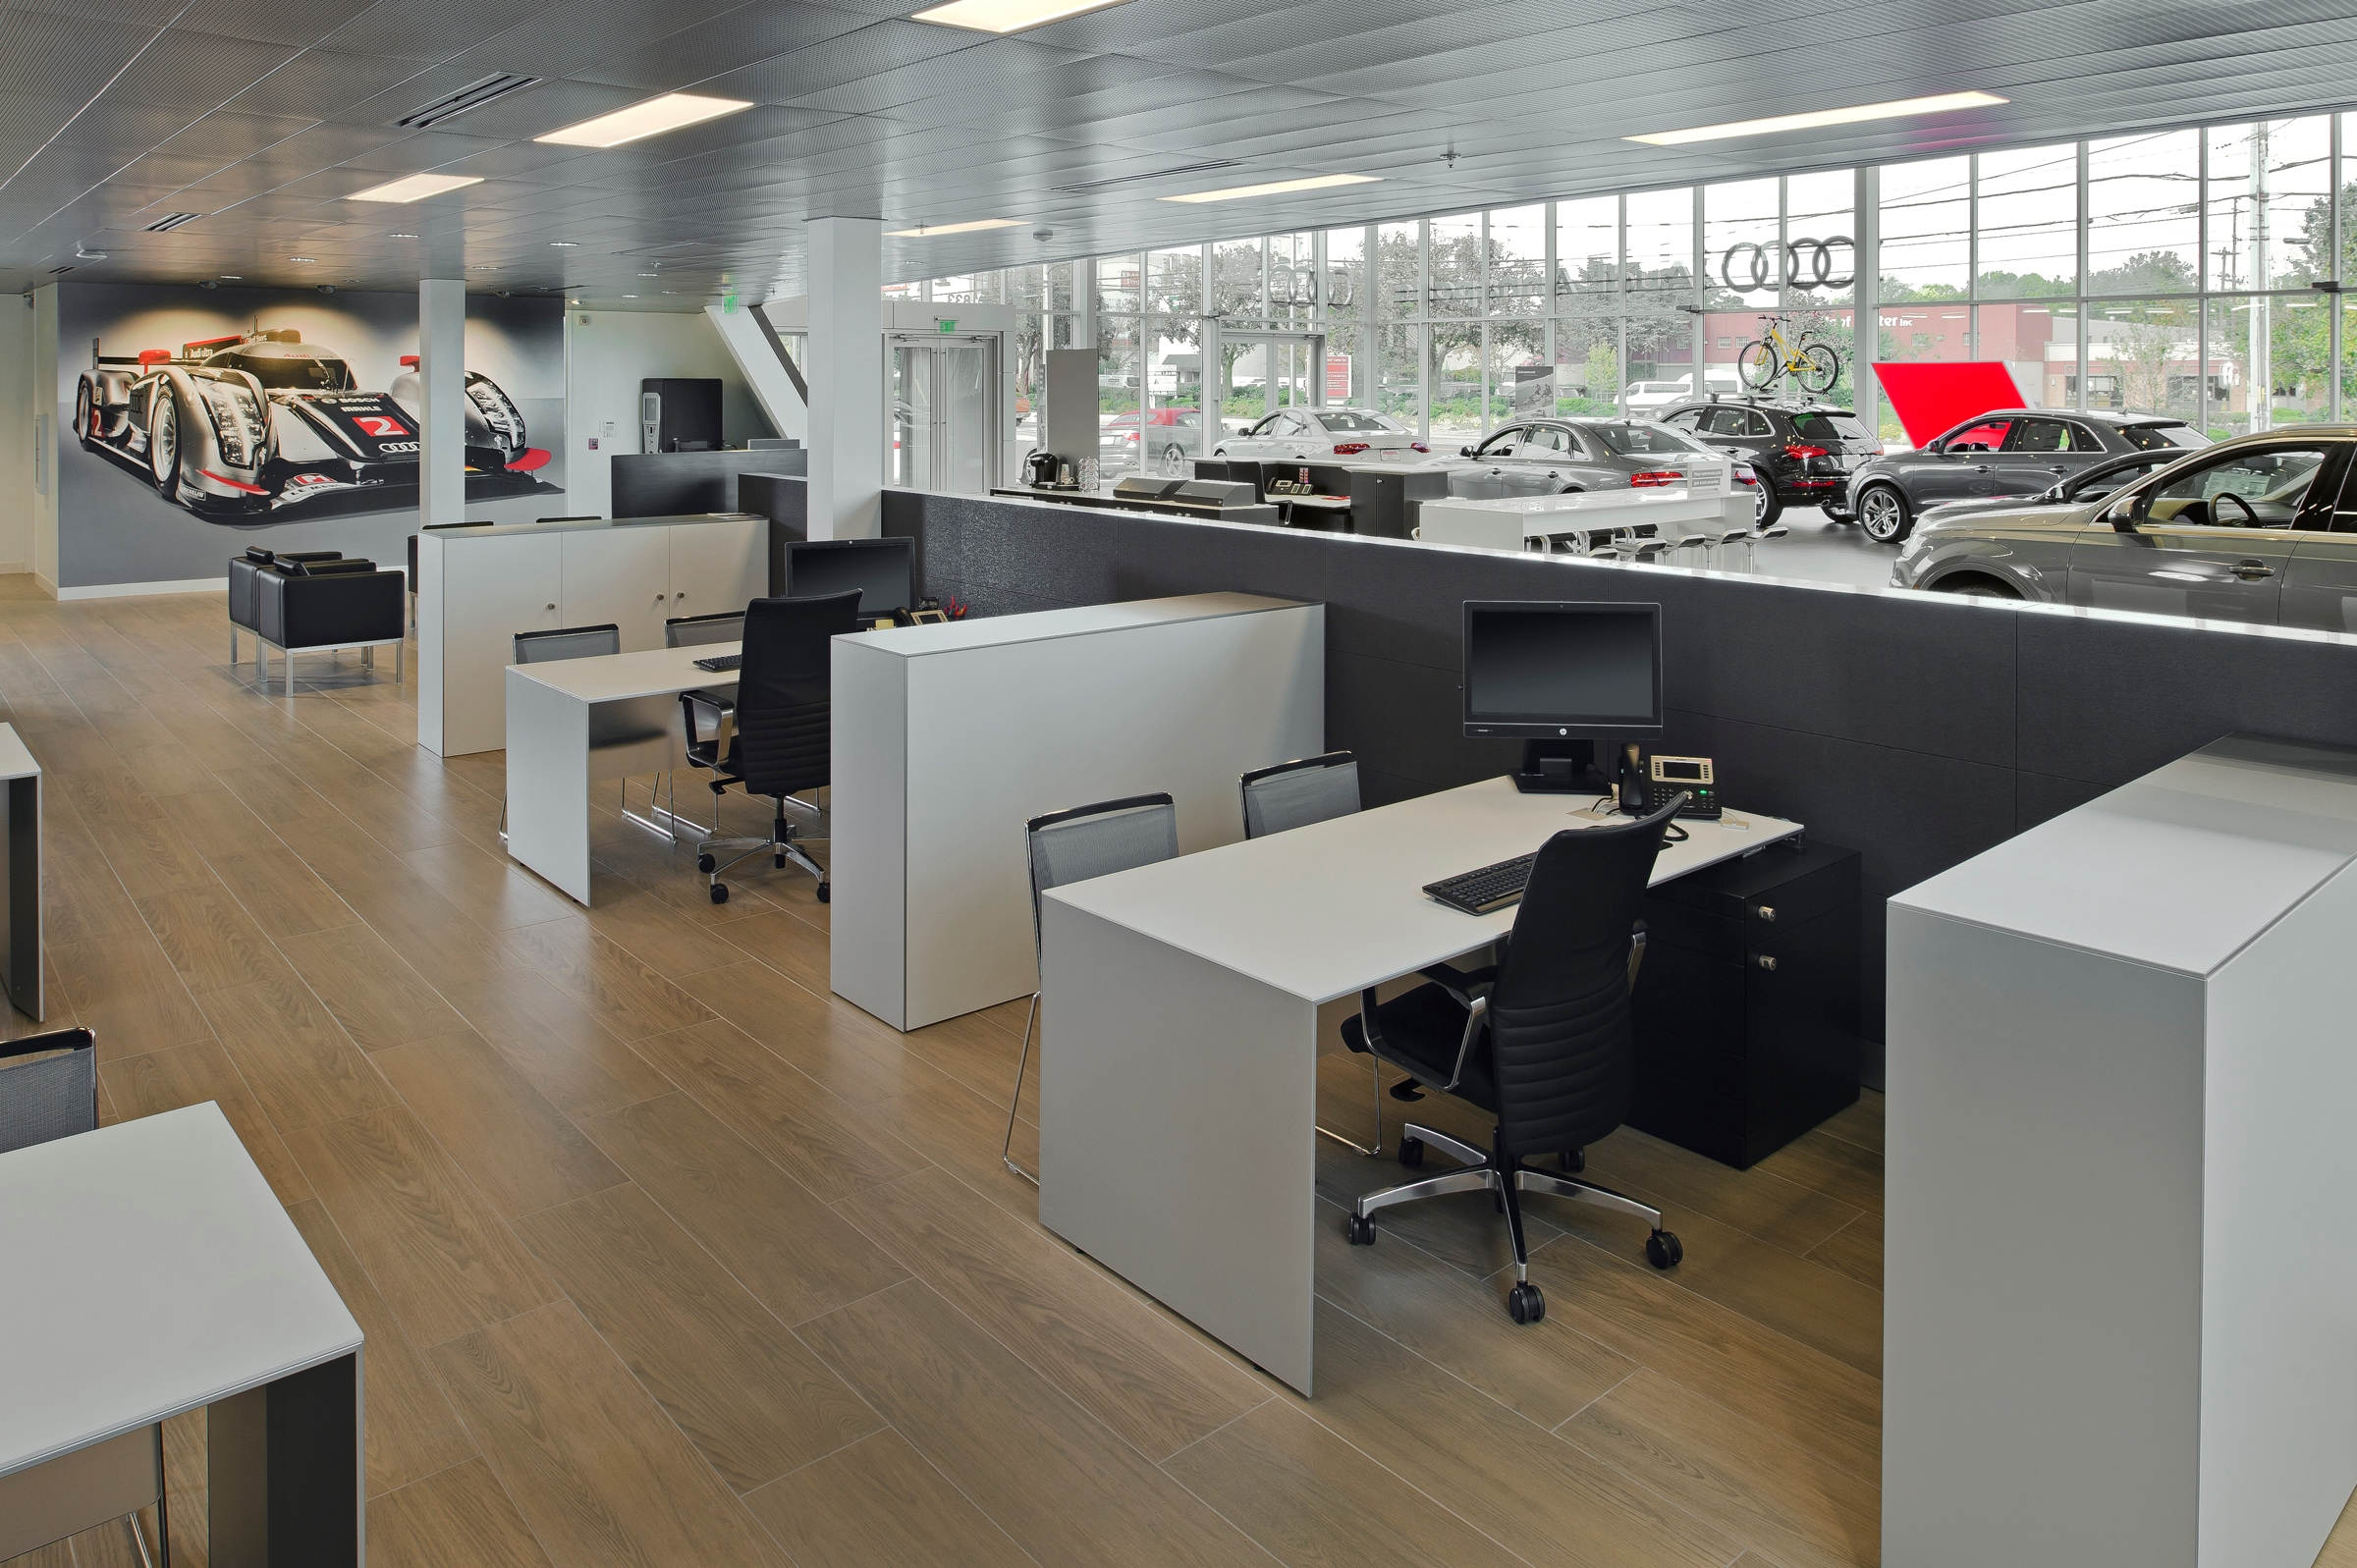 Criswell Audi, Now Audi Annapolis Is Very Excited To Have Recently Moved  Into Our New Facility On August 23, 2016 At 1833 West Street, Annapolis, MD,  ...